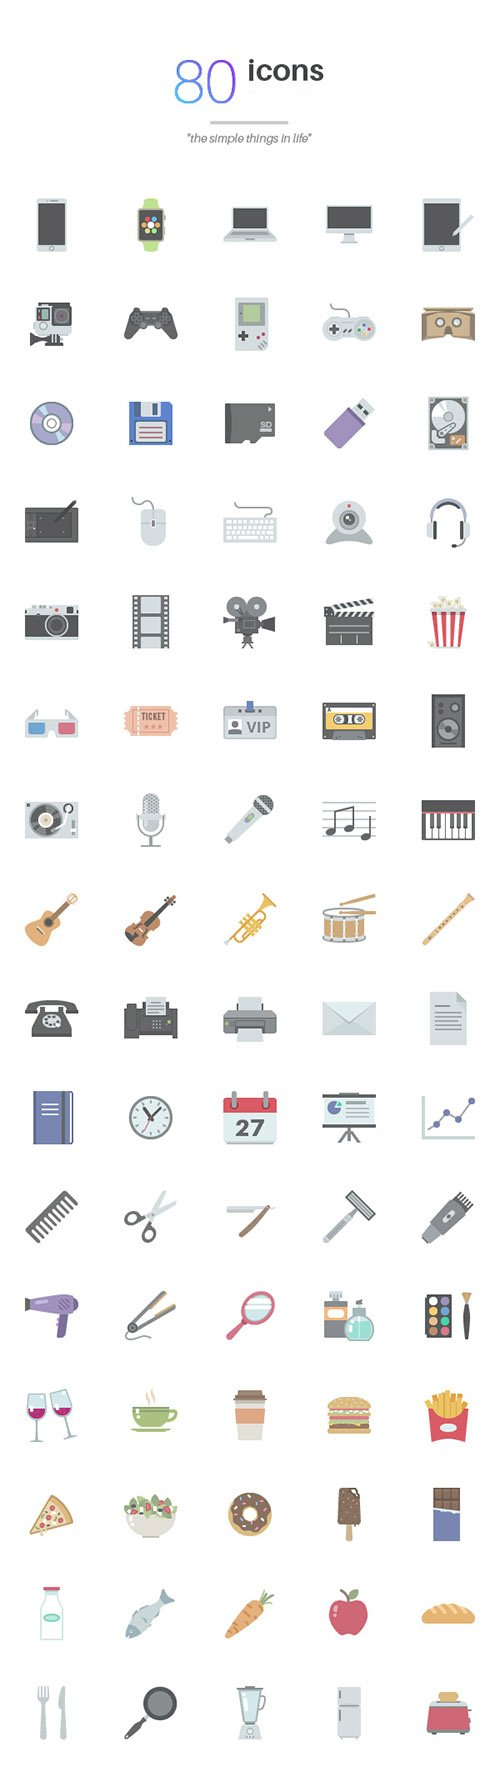 AI, PNG, PSD Web Icons - Simple Things in Life